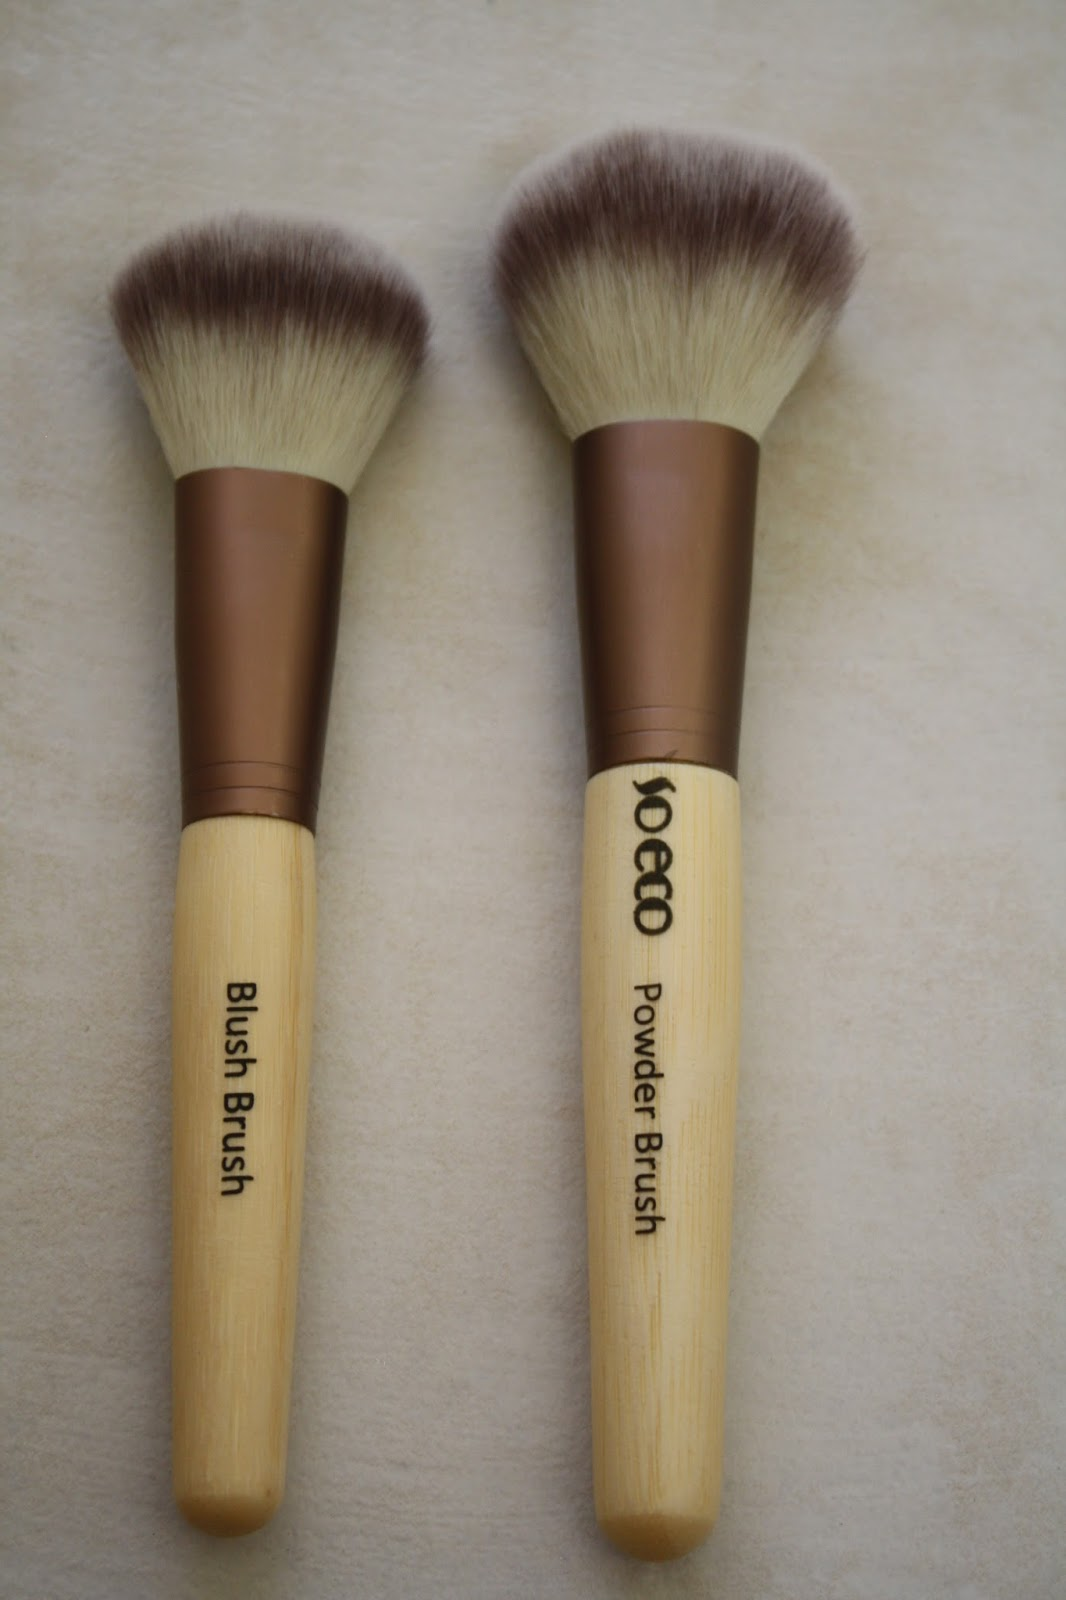 Makeup Brushes Sponge Collection: Ladybirdandlola: So Eco Makeup Brushes